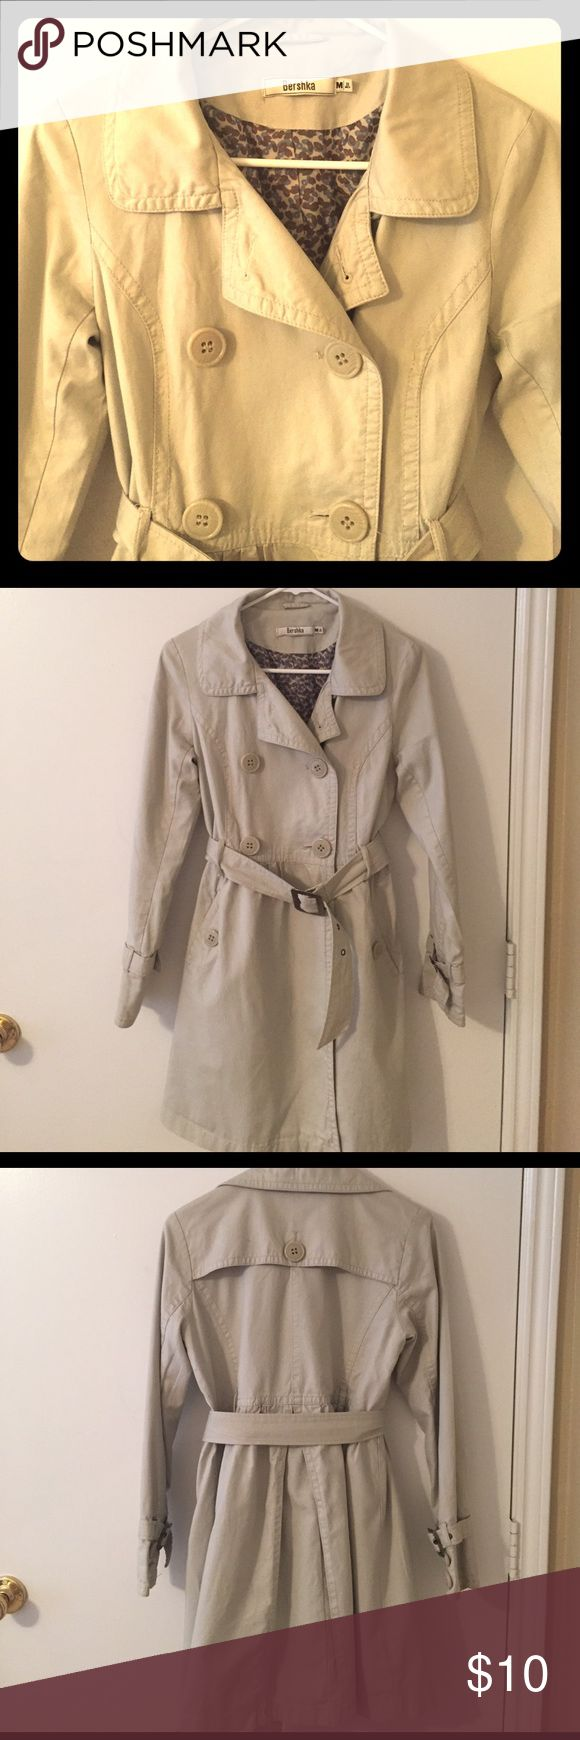 Bershka beige trench coat Vintage trench coat from Spain. Lightweight coat perfect for a spring/summer night. Bershka Jackets & Coats Trench Coats